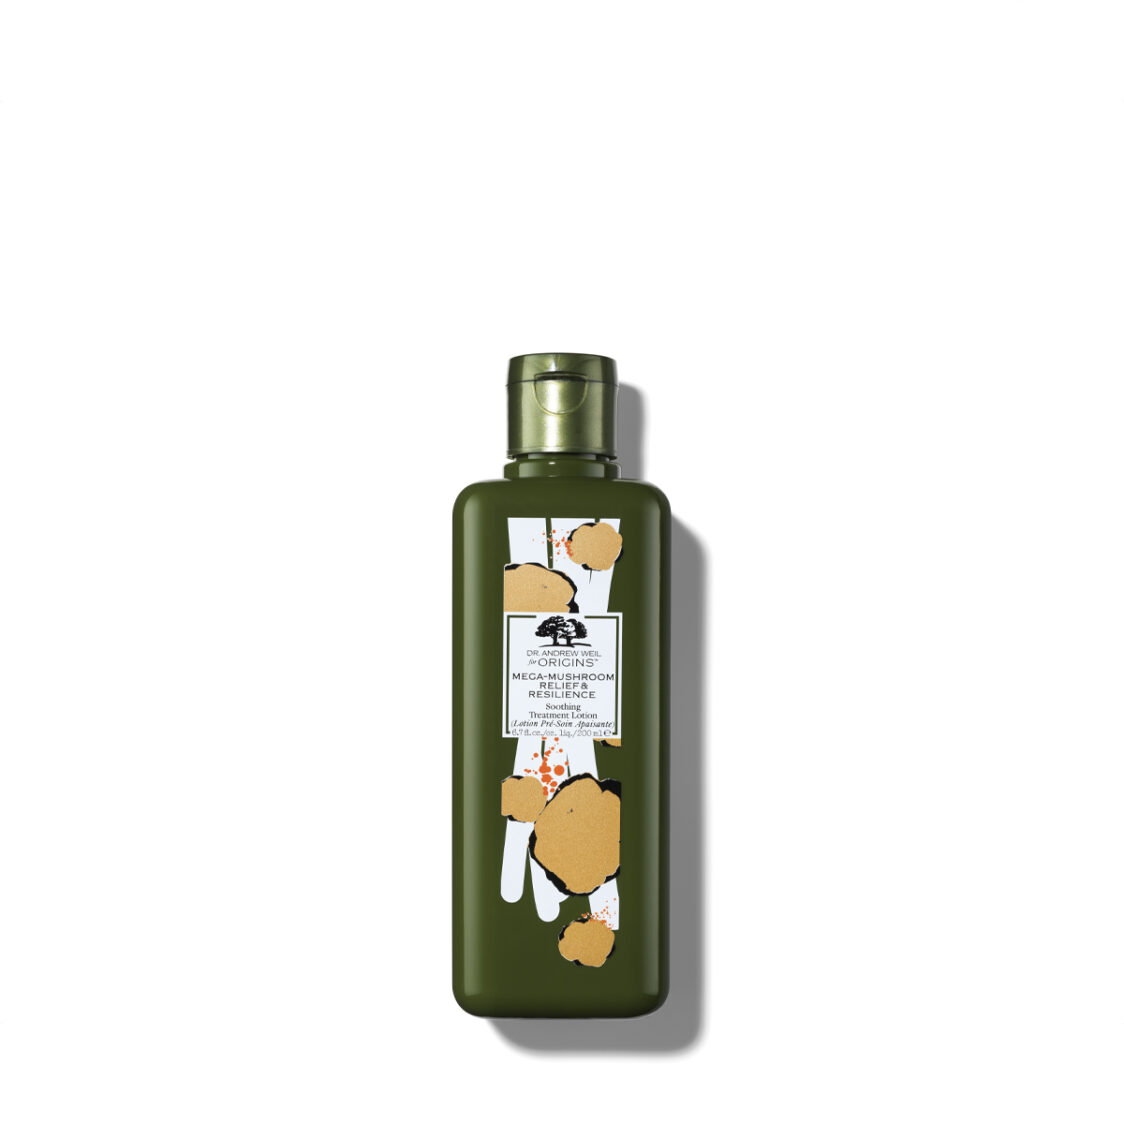 Limited Edition Dr Andrew Weil for Origins Mega-Mushroom Relief  Resilience Soothing Treatment Lotion 200ml